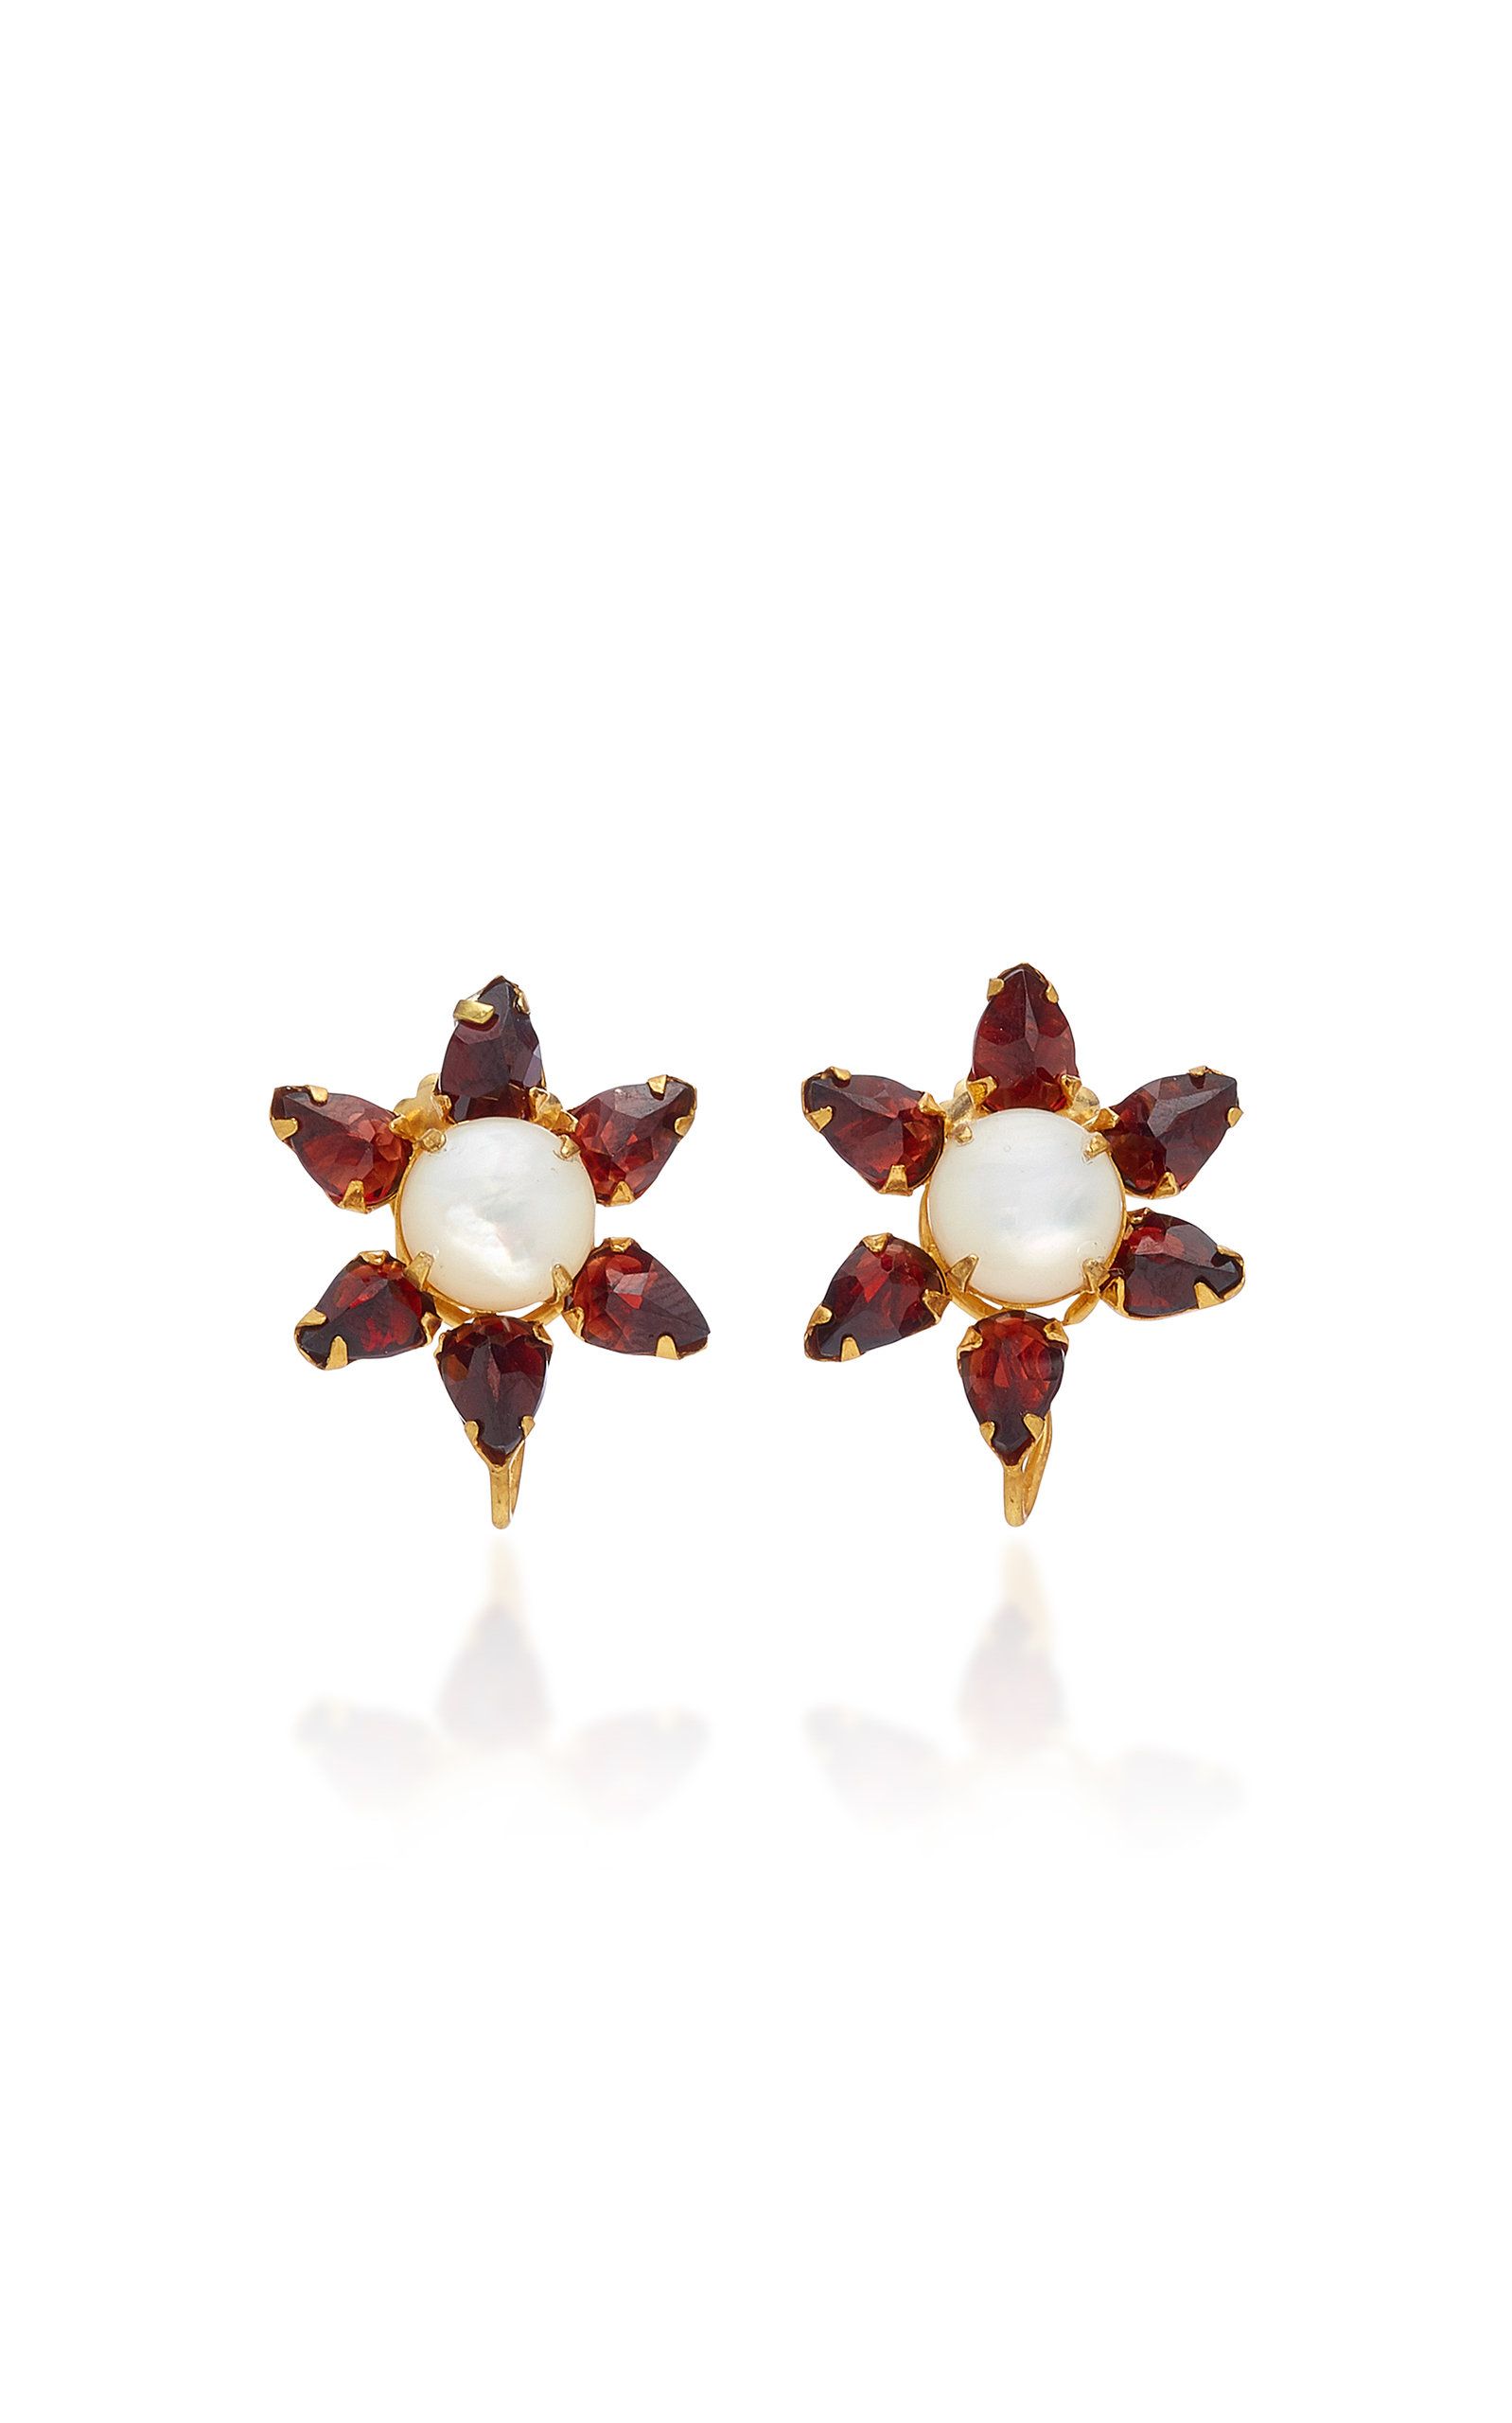 1bcdafdbd 14K Gold-Plated Garnet and Mother of Pearl Earrings by Bounkit ...